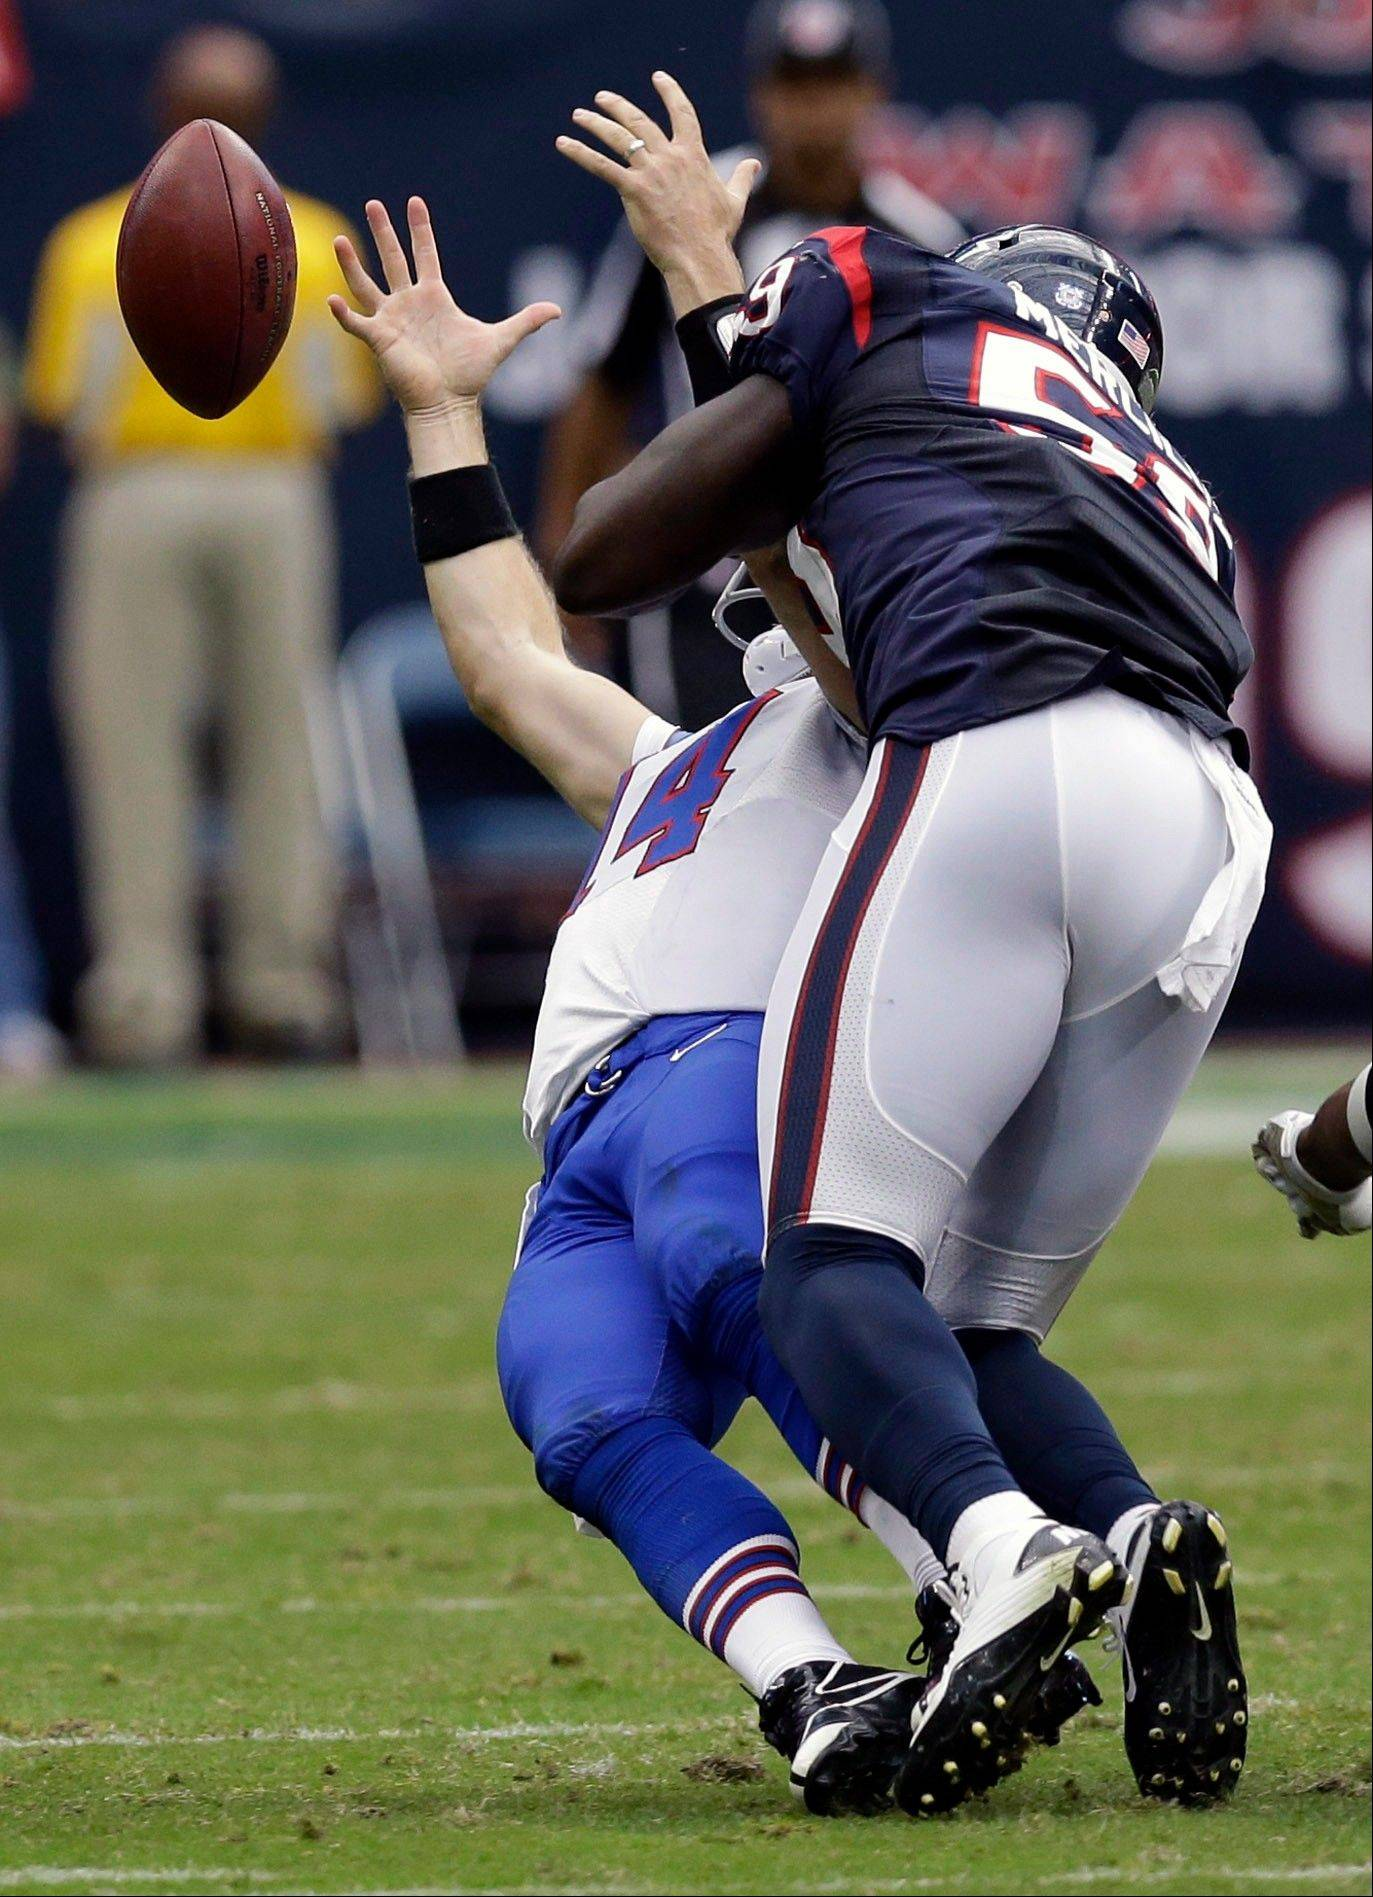 Houston Texans linebacker Whitney Mercilus hits Buffalo Bills quarterback Ryan Fitzpatrick, left, causing a fumble in the fourth quarter Sunday in Houston.